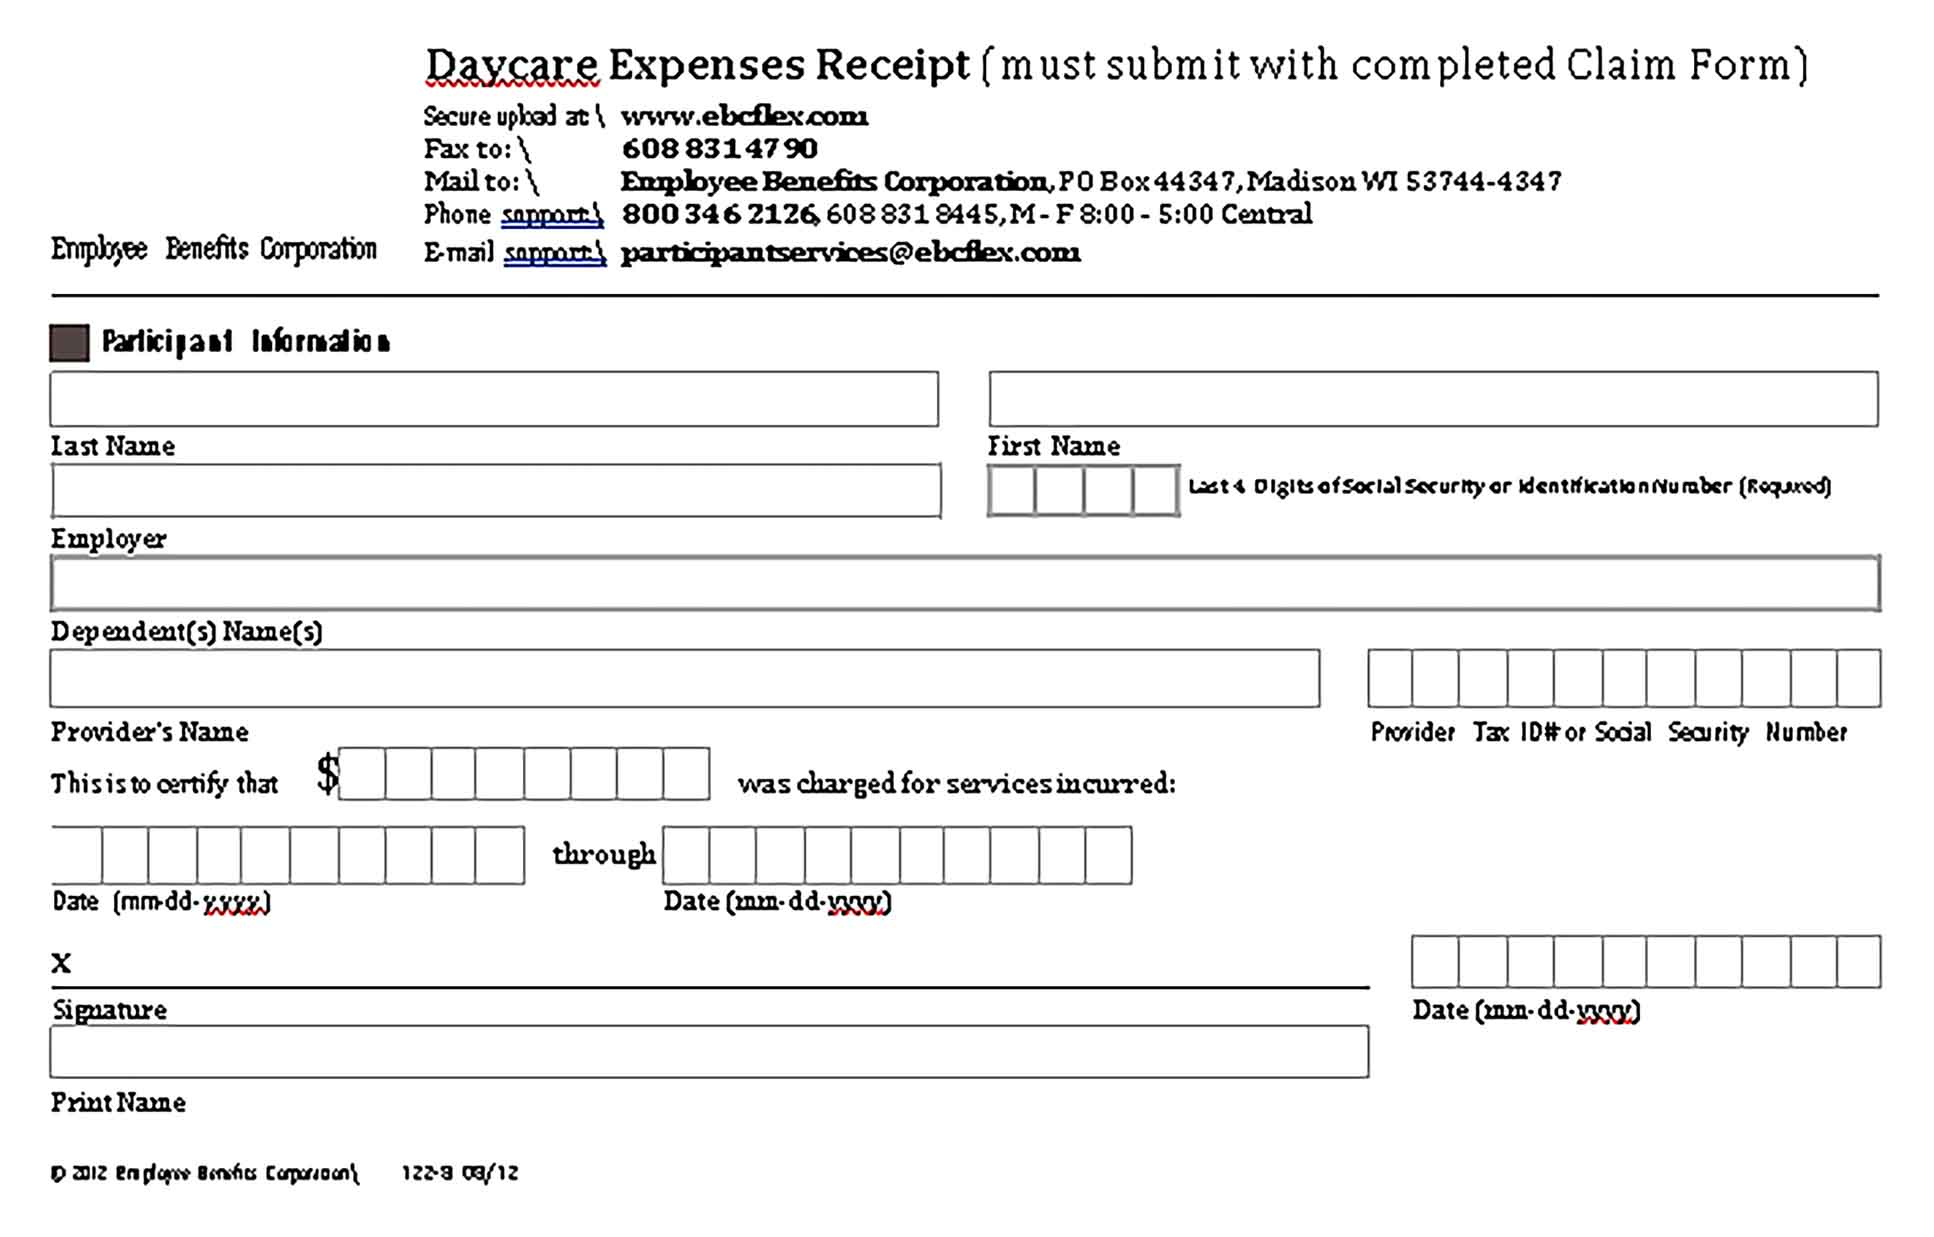 Sample Daycare Expenses Receipt Templates 1